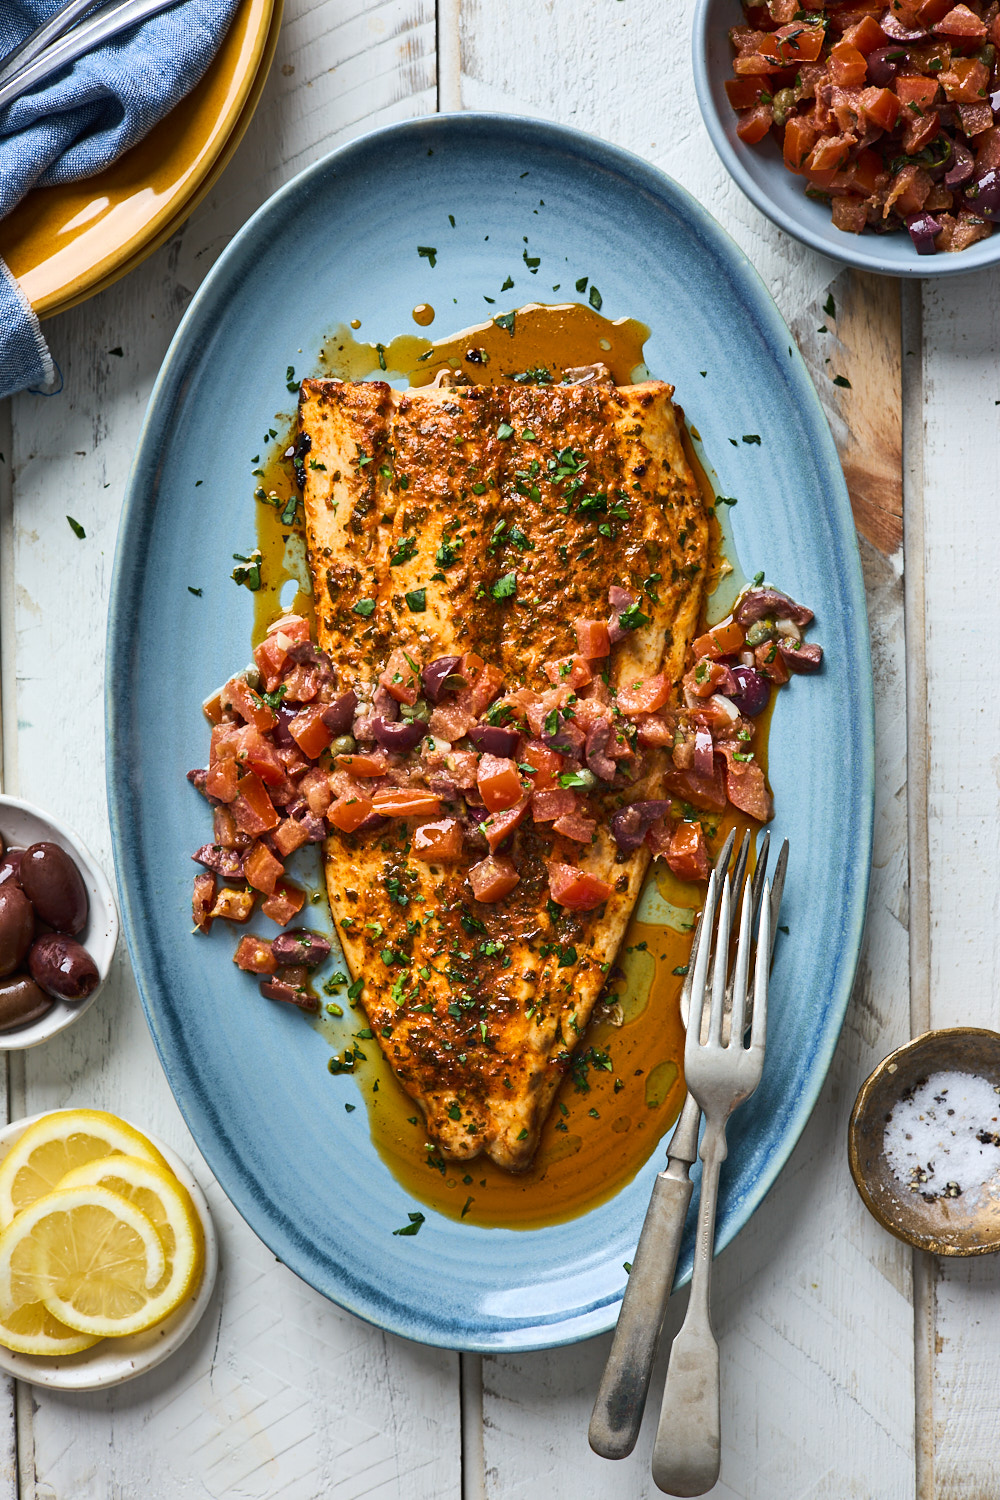 King Fish in Provencale sauce